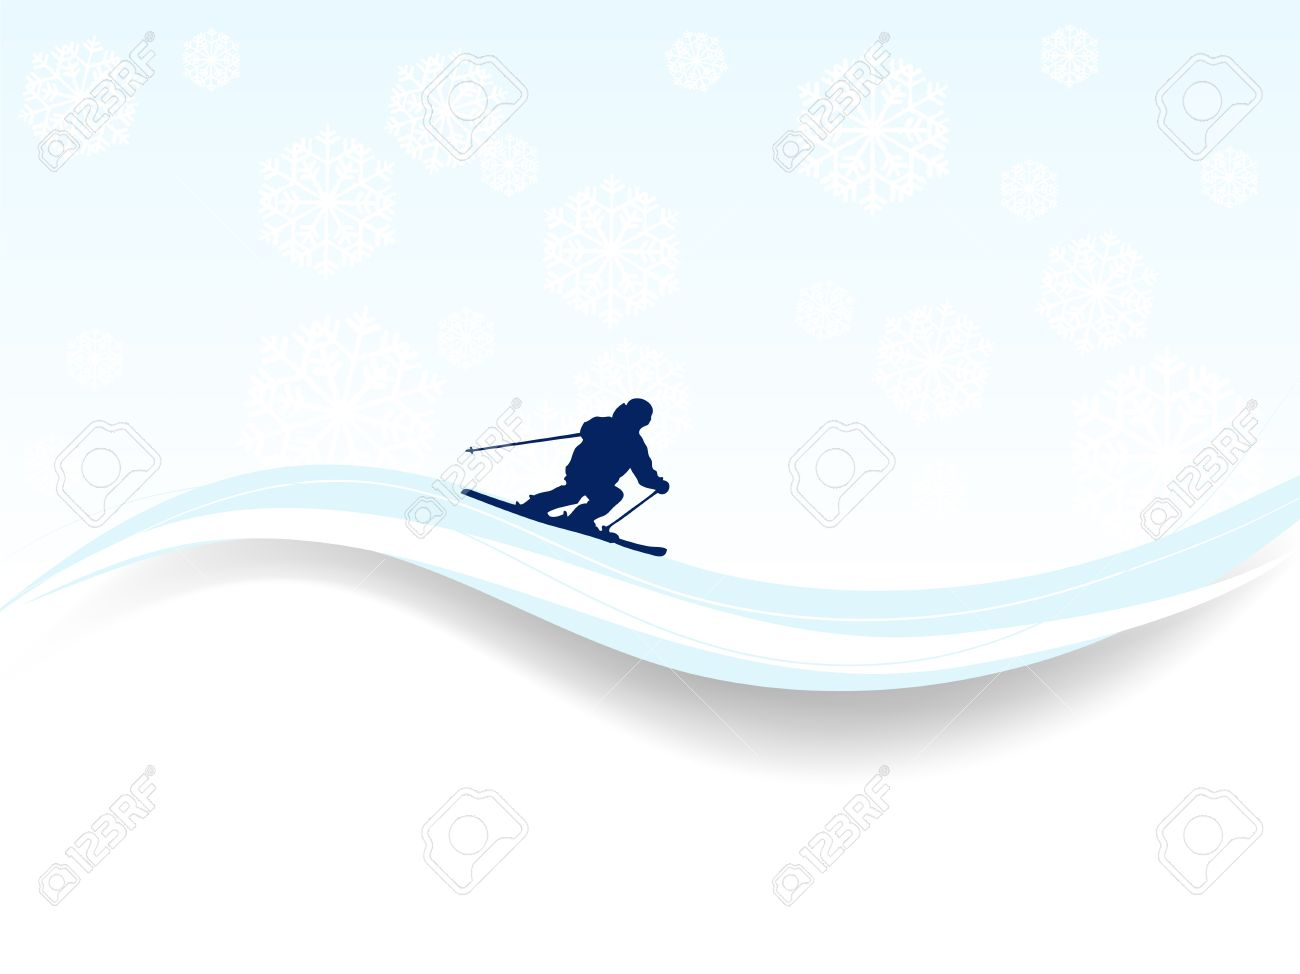 Abstract winter background with skier and snowflakes Stock Vector - 16911859